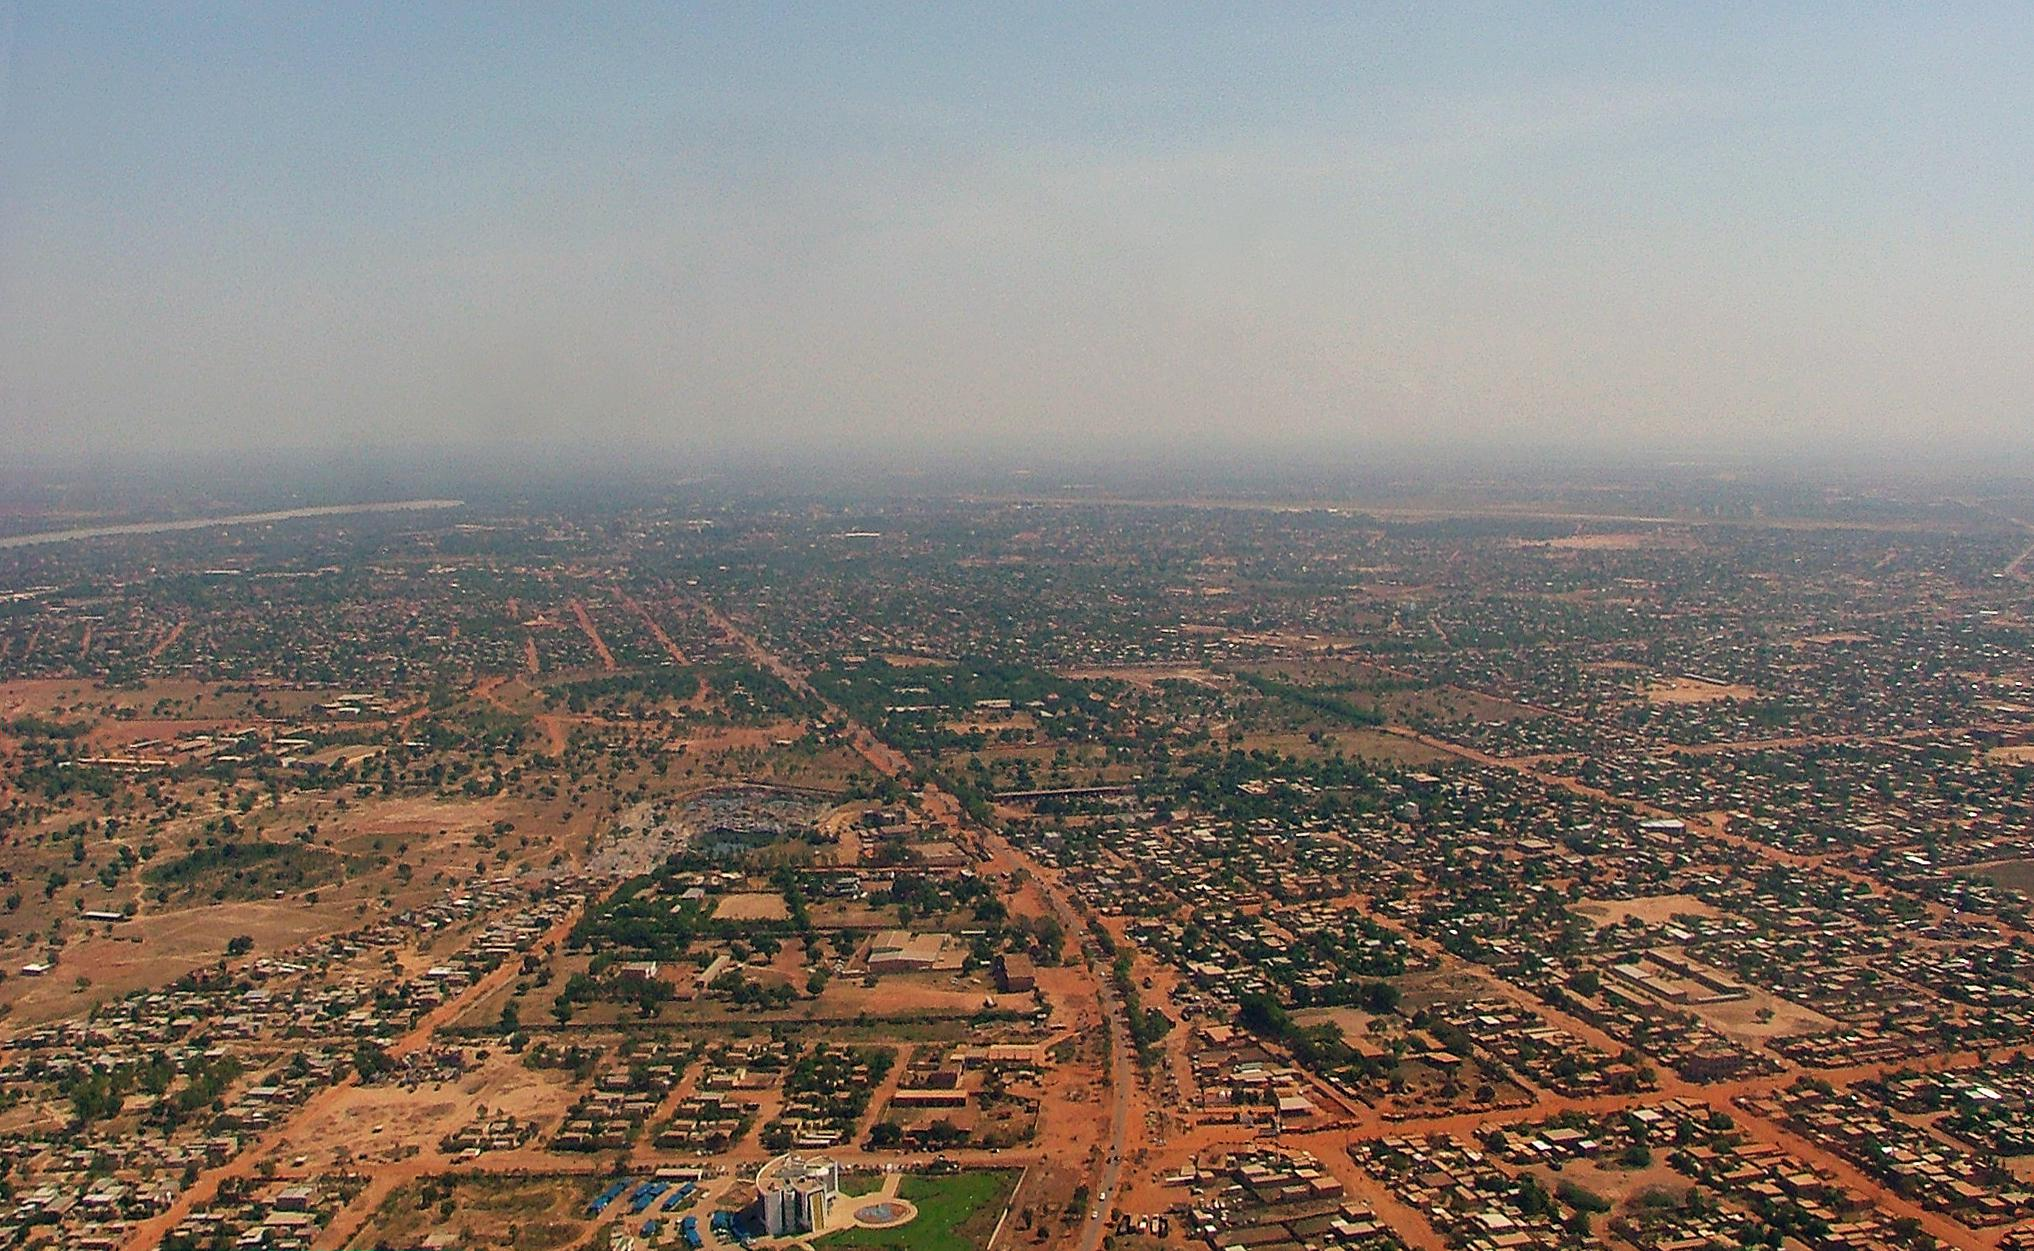 Aerial view of Ouagadougou © Gray Tappan/USGS